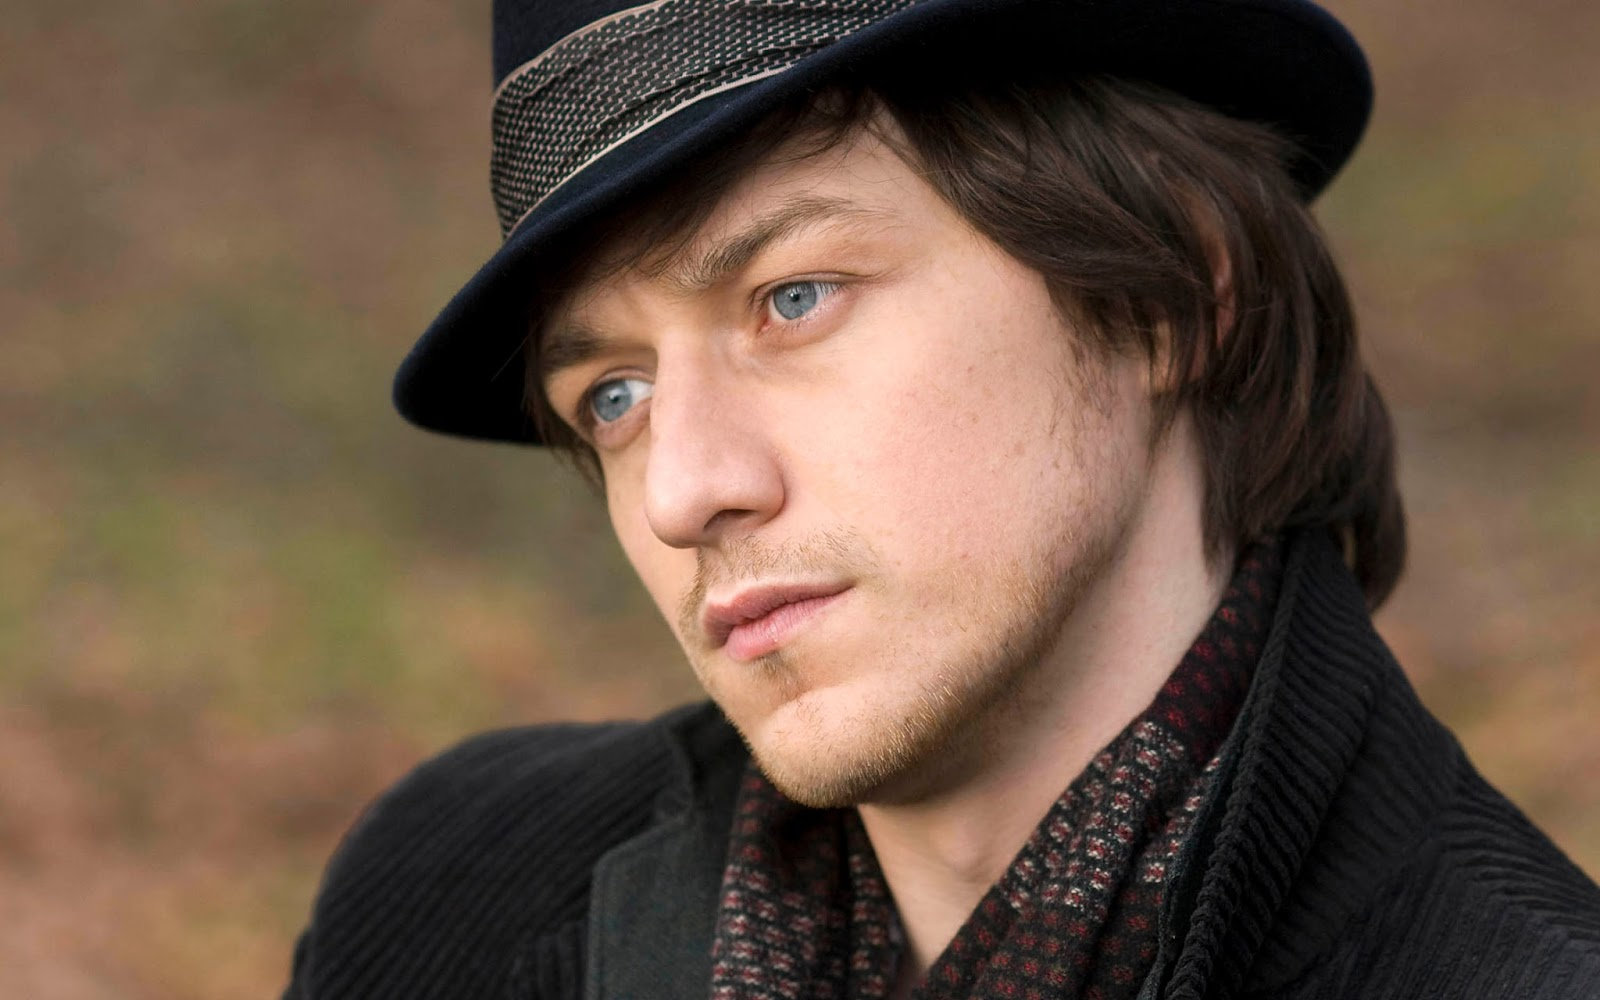 James McAvoy Charming Hollywood Actor Hd Wallpaper | Mow ...